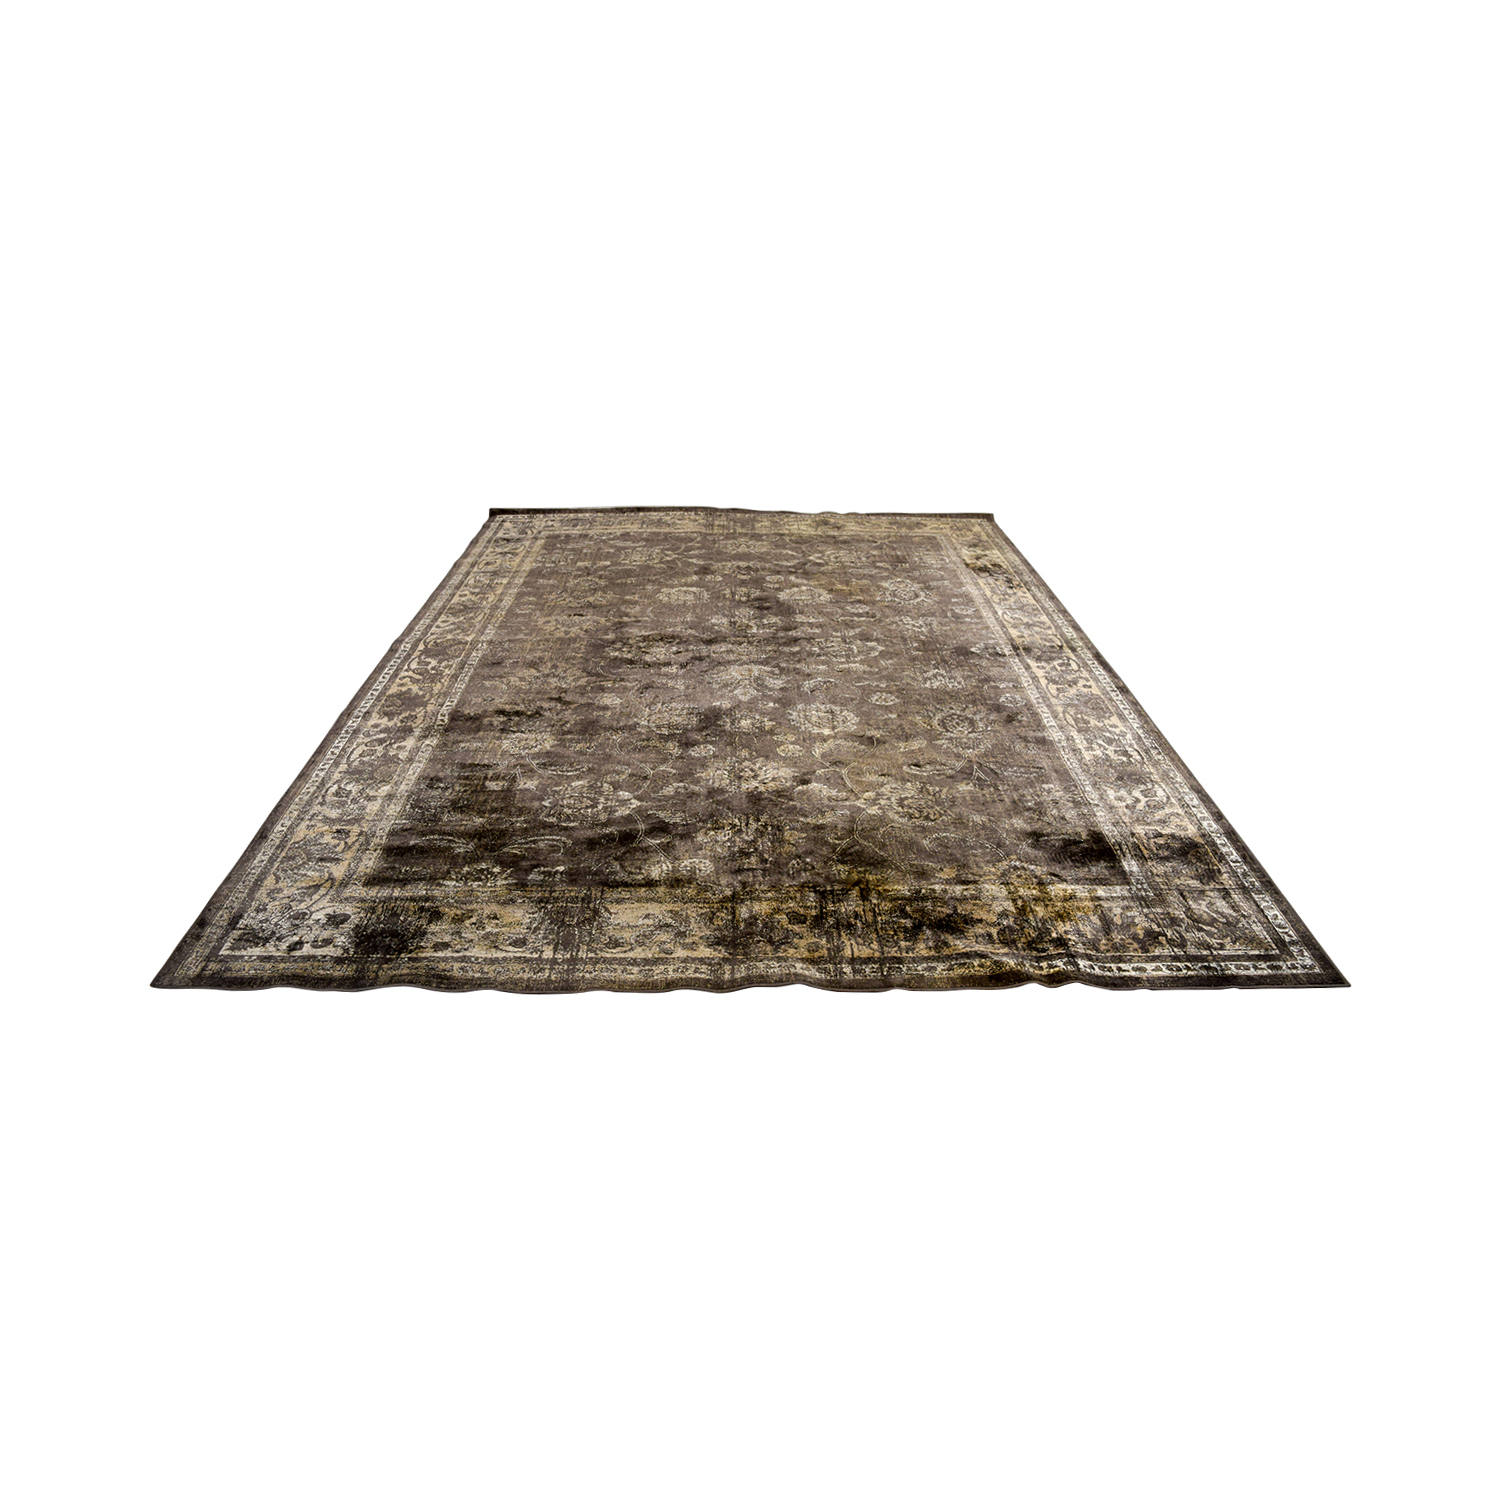 Safavieh Gray and Tan Rug / Rugs